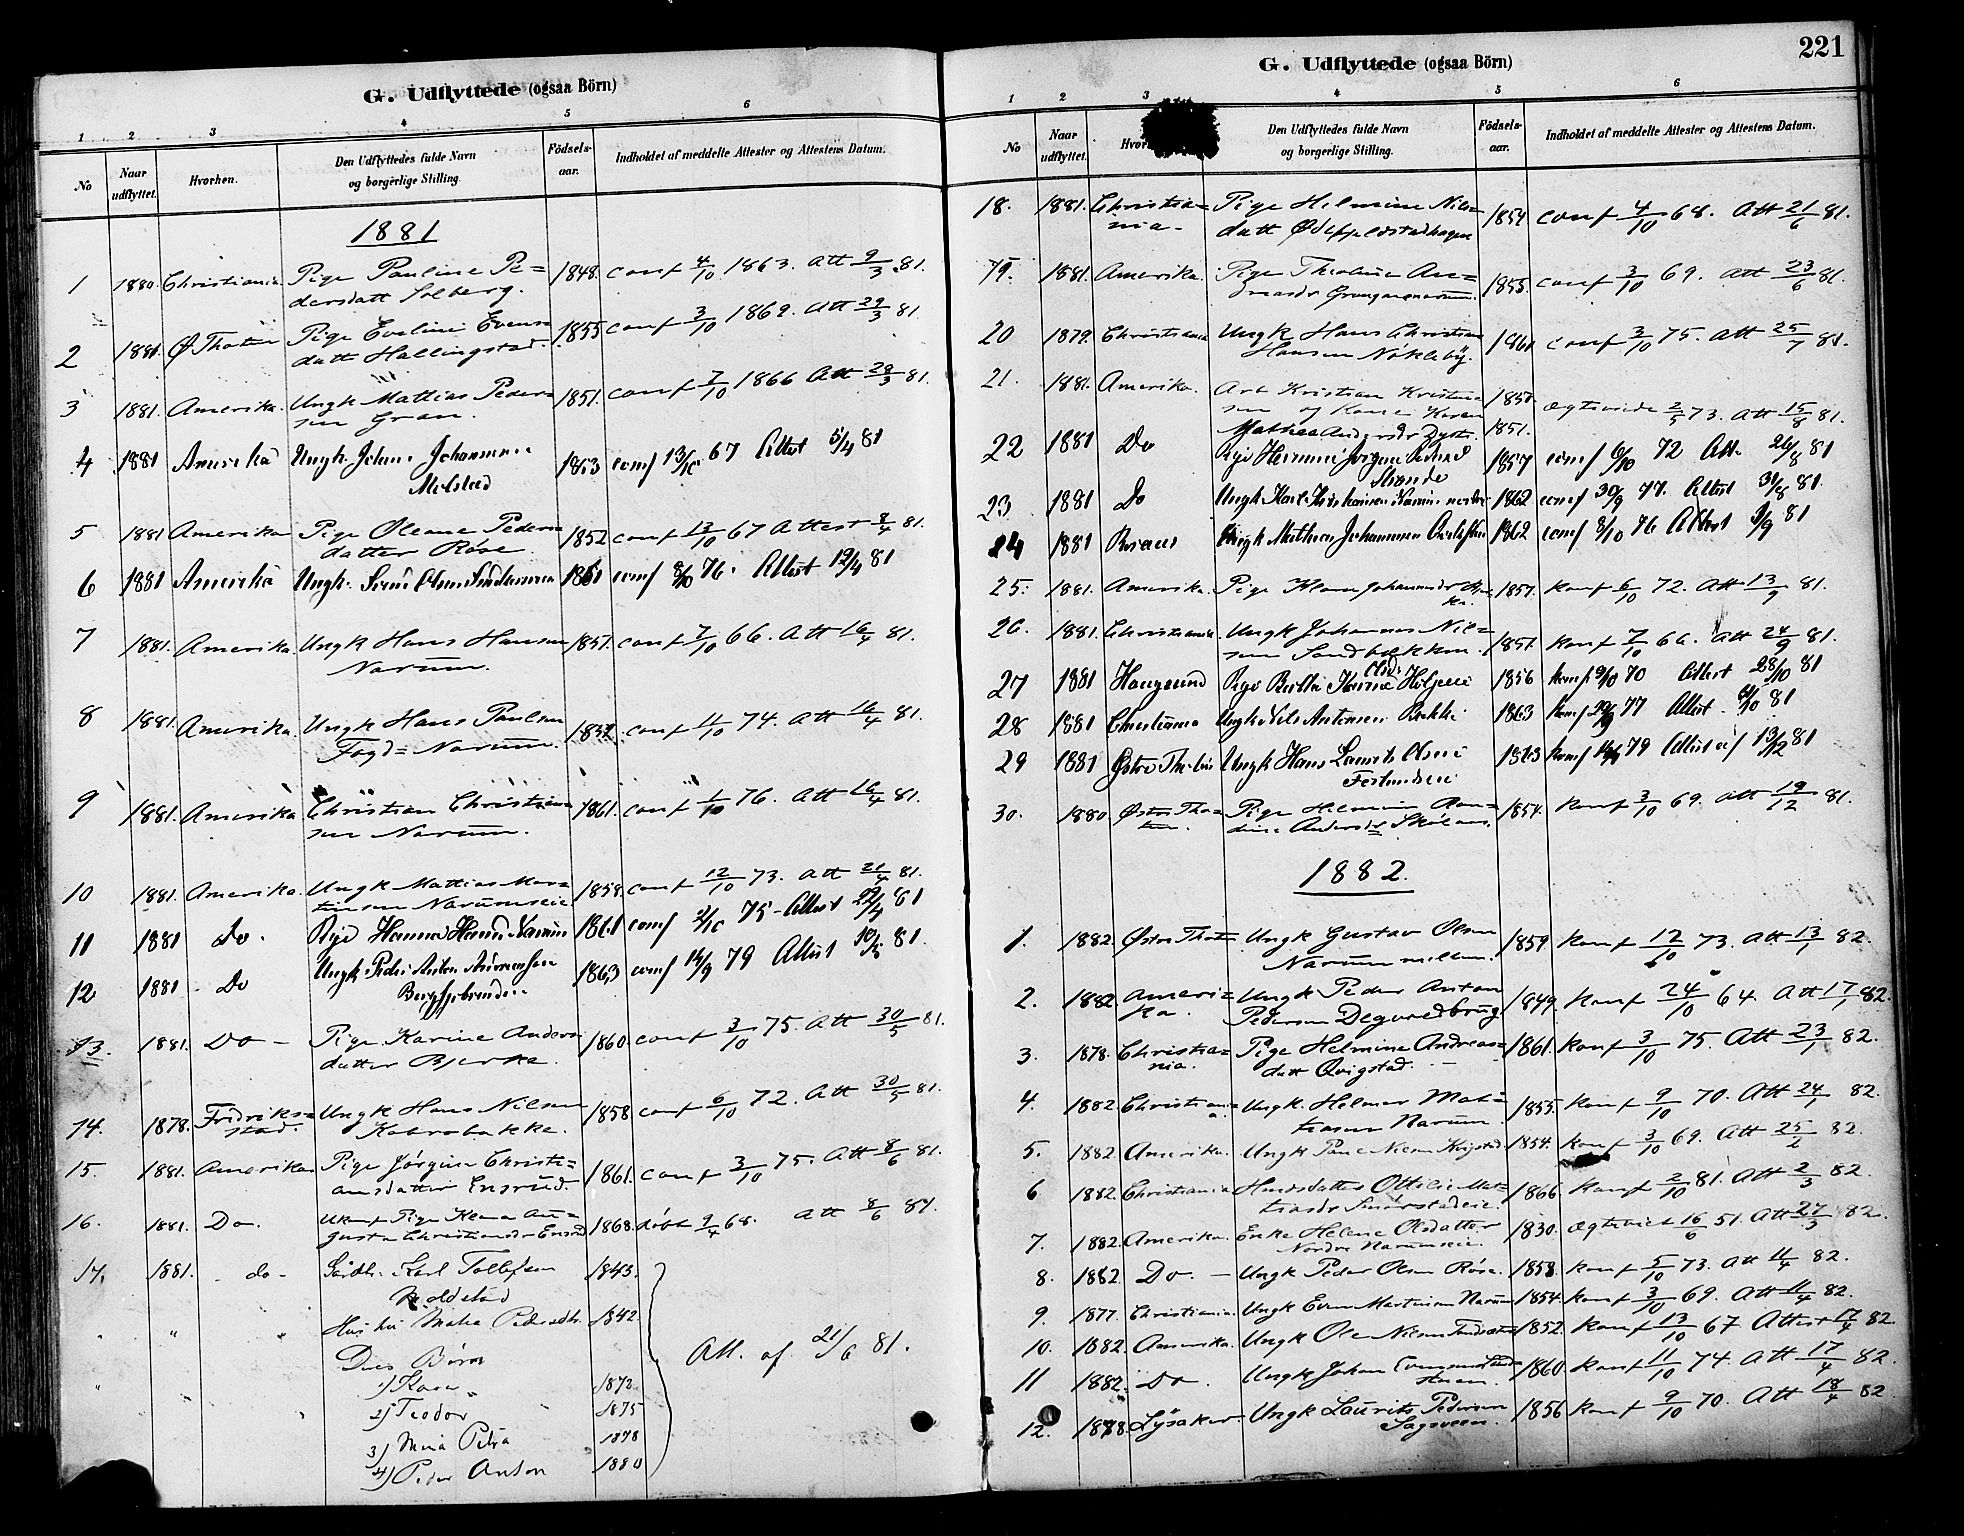 SAH, Vestre Toten prestekontor, H/Ha/Haa/L0010: Parish register (official) no. 10, 1878-1894, p. 221